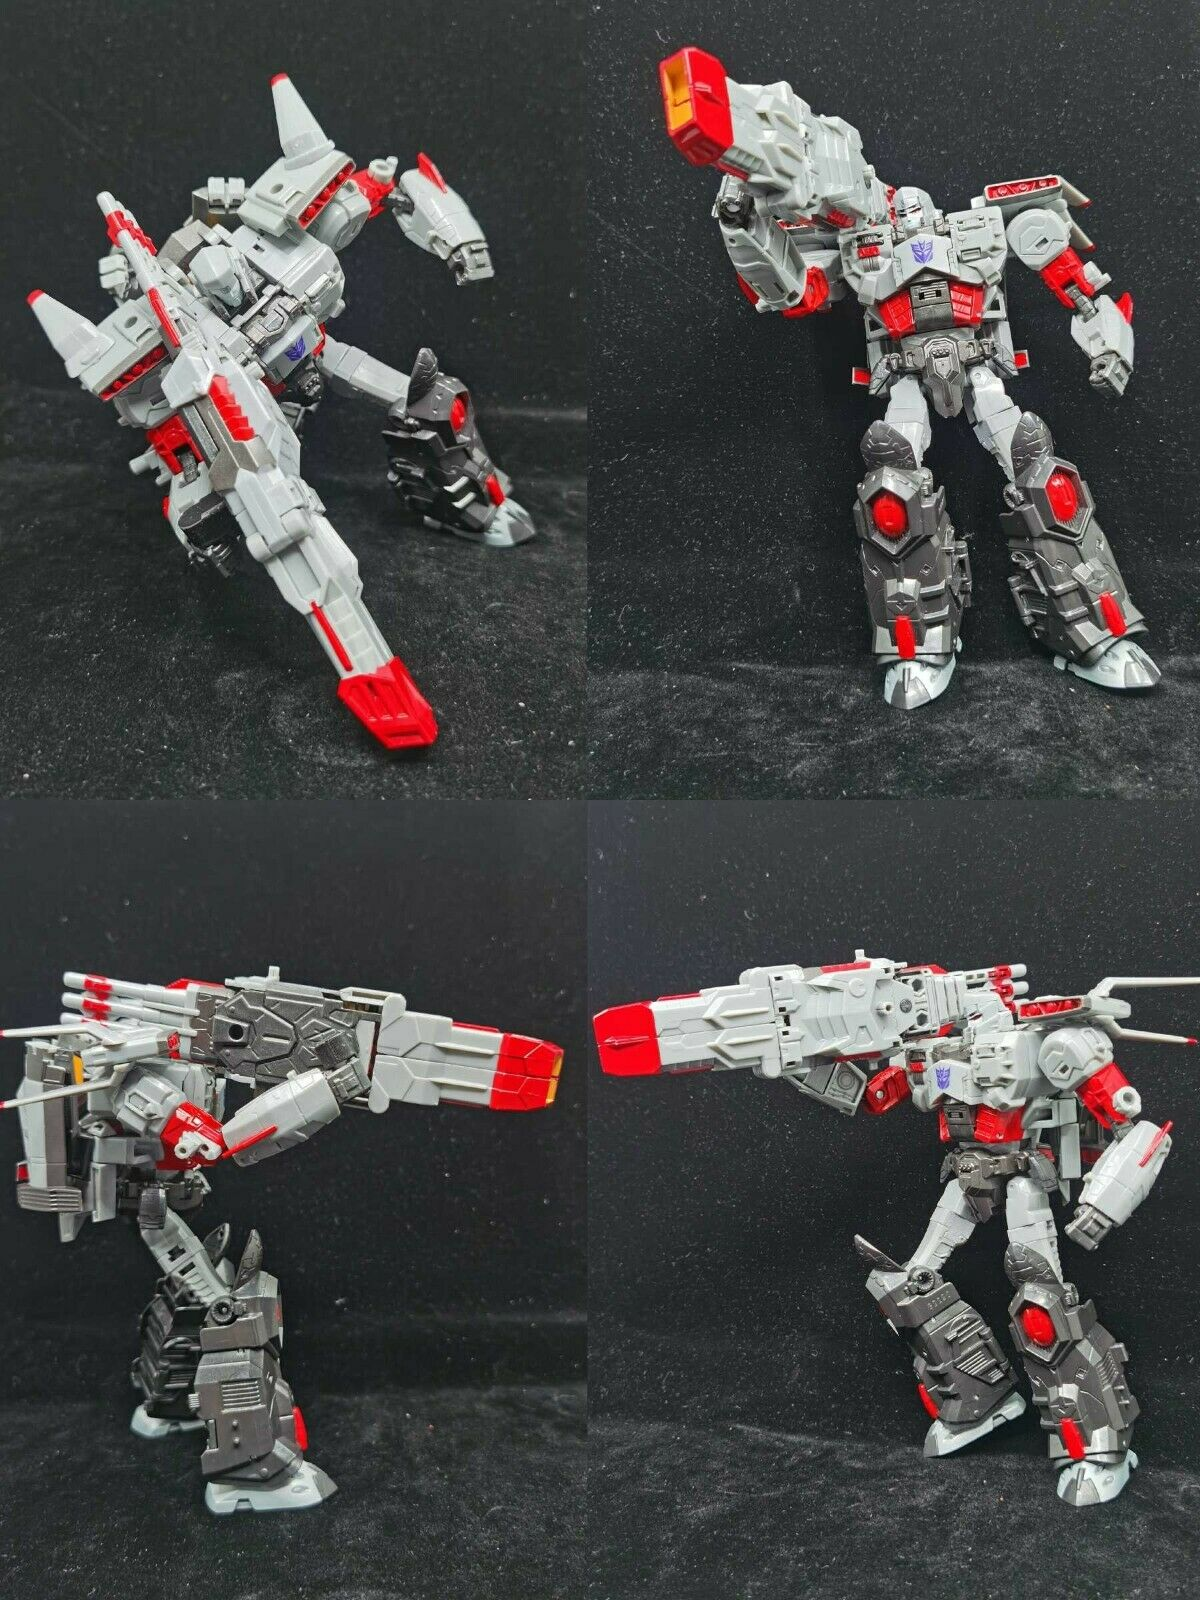 ROS-018 Upgrade Kit for Generation Selects Super Megatron Ratchet/'s operating